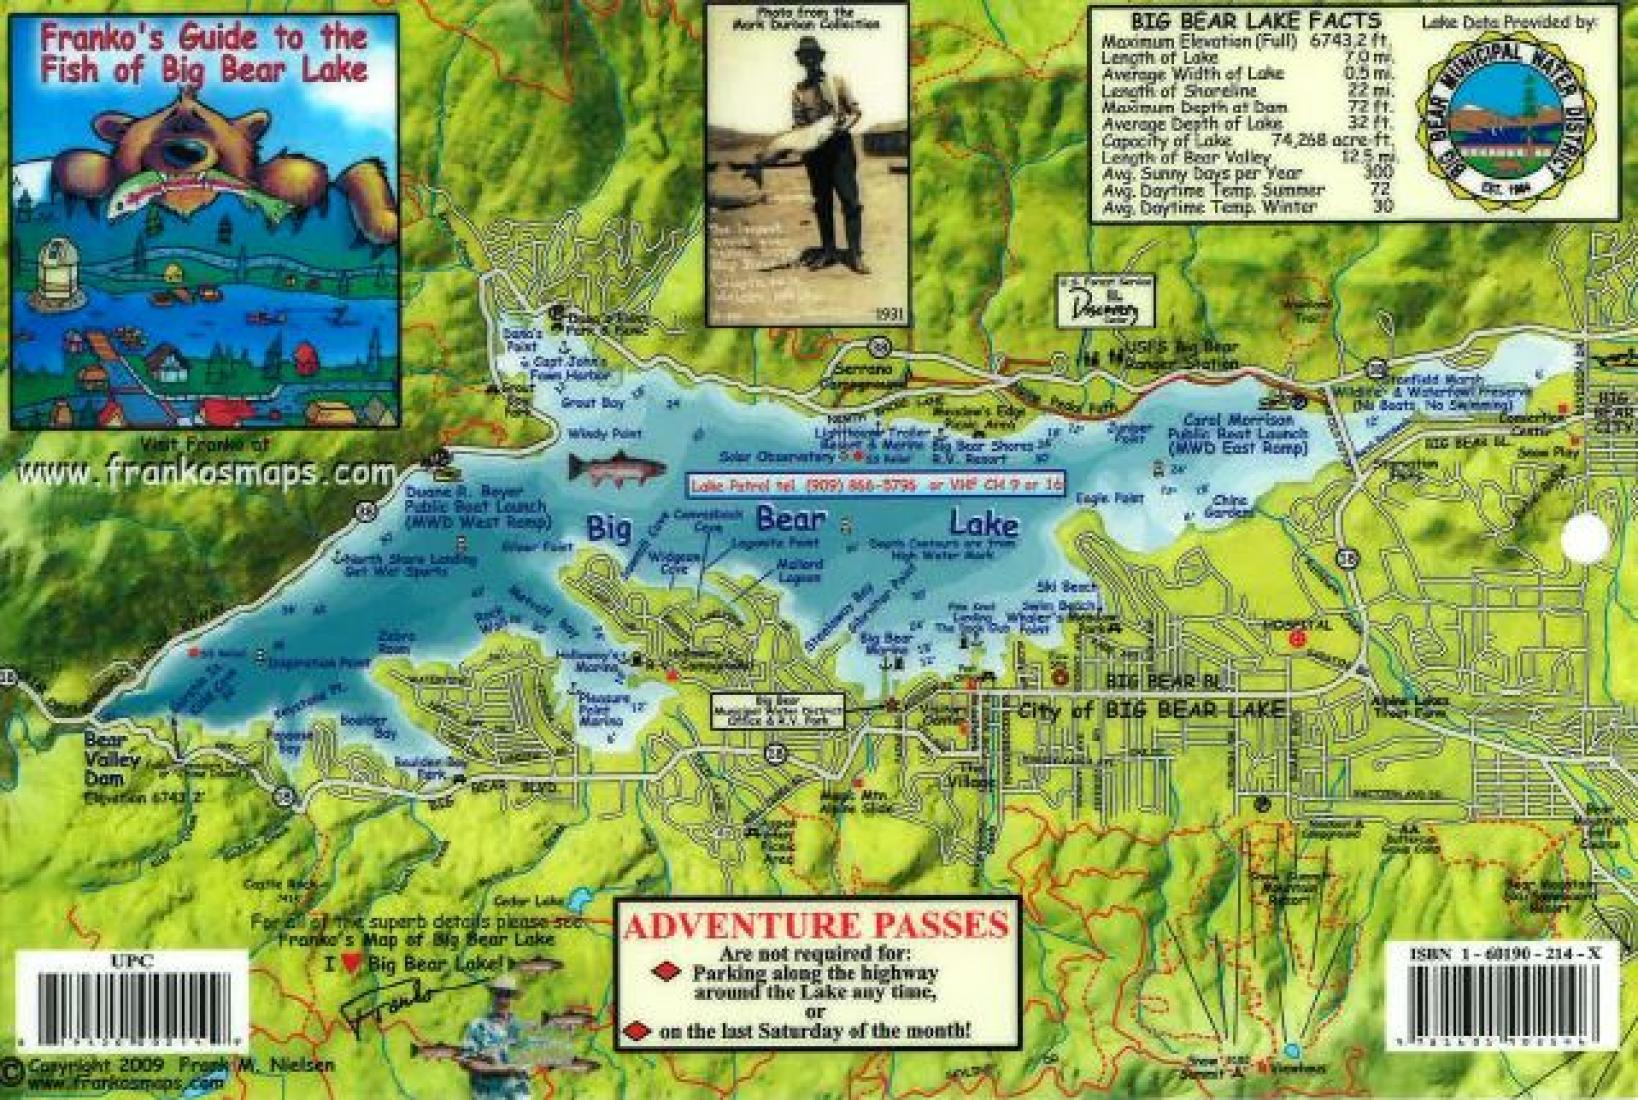 big bear lake fishing map California Fish Card Big Bear Lake 2009 By Frankos Maps Ltd big bear lake fishing map